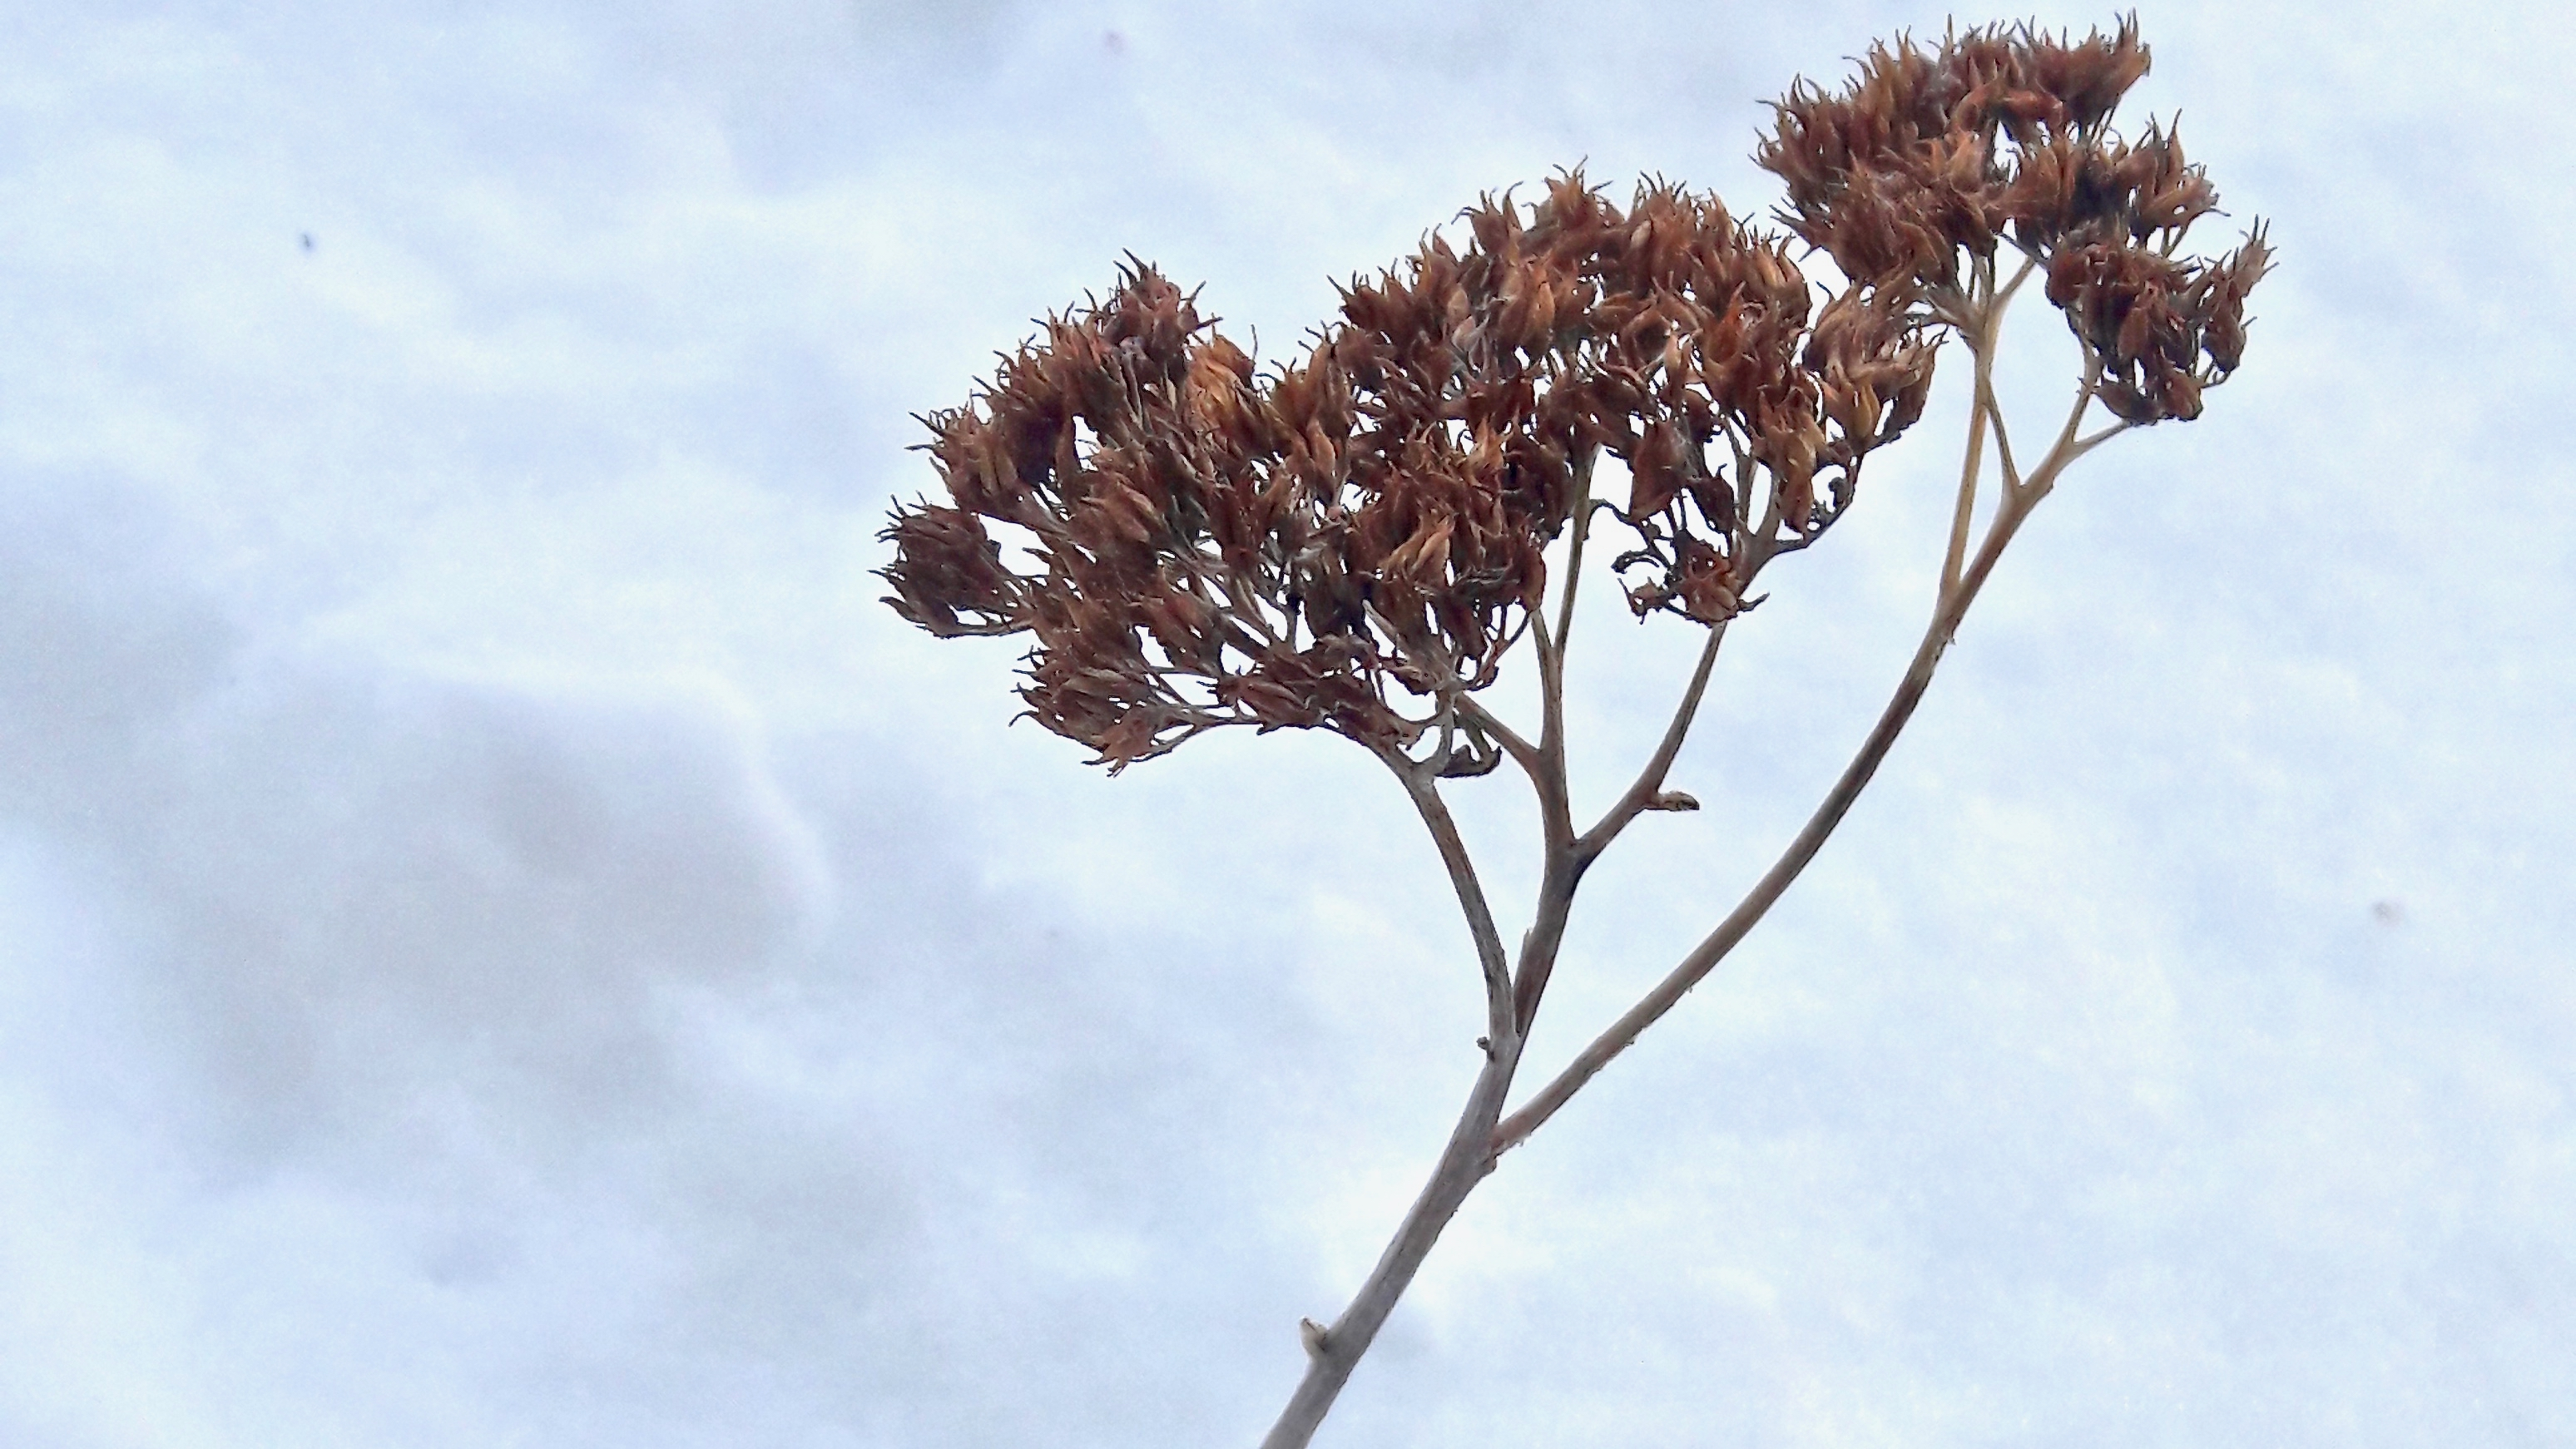 Native plant in snow